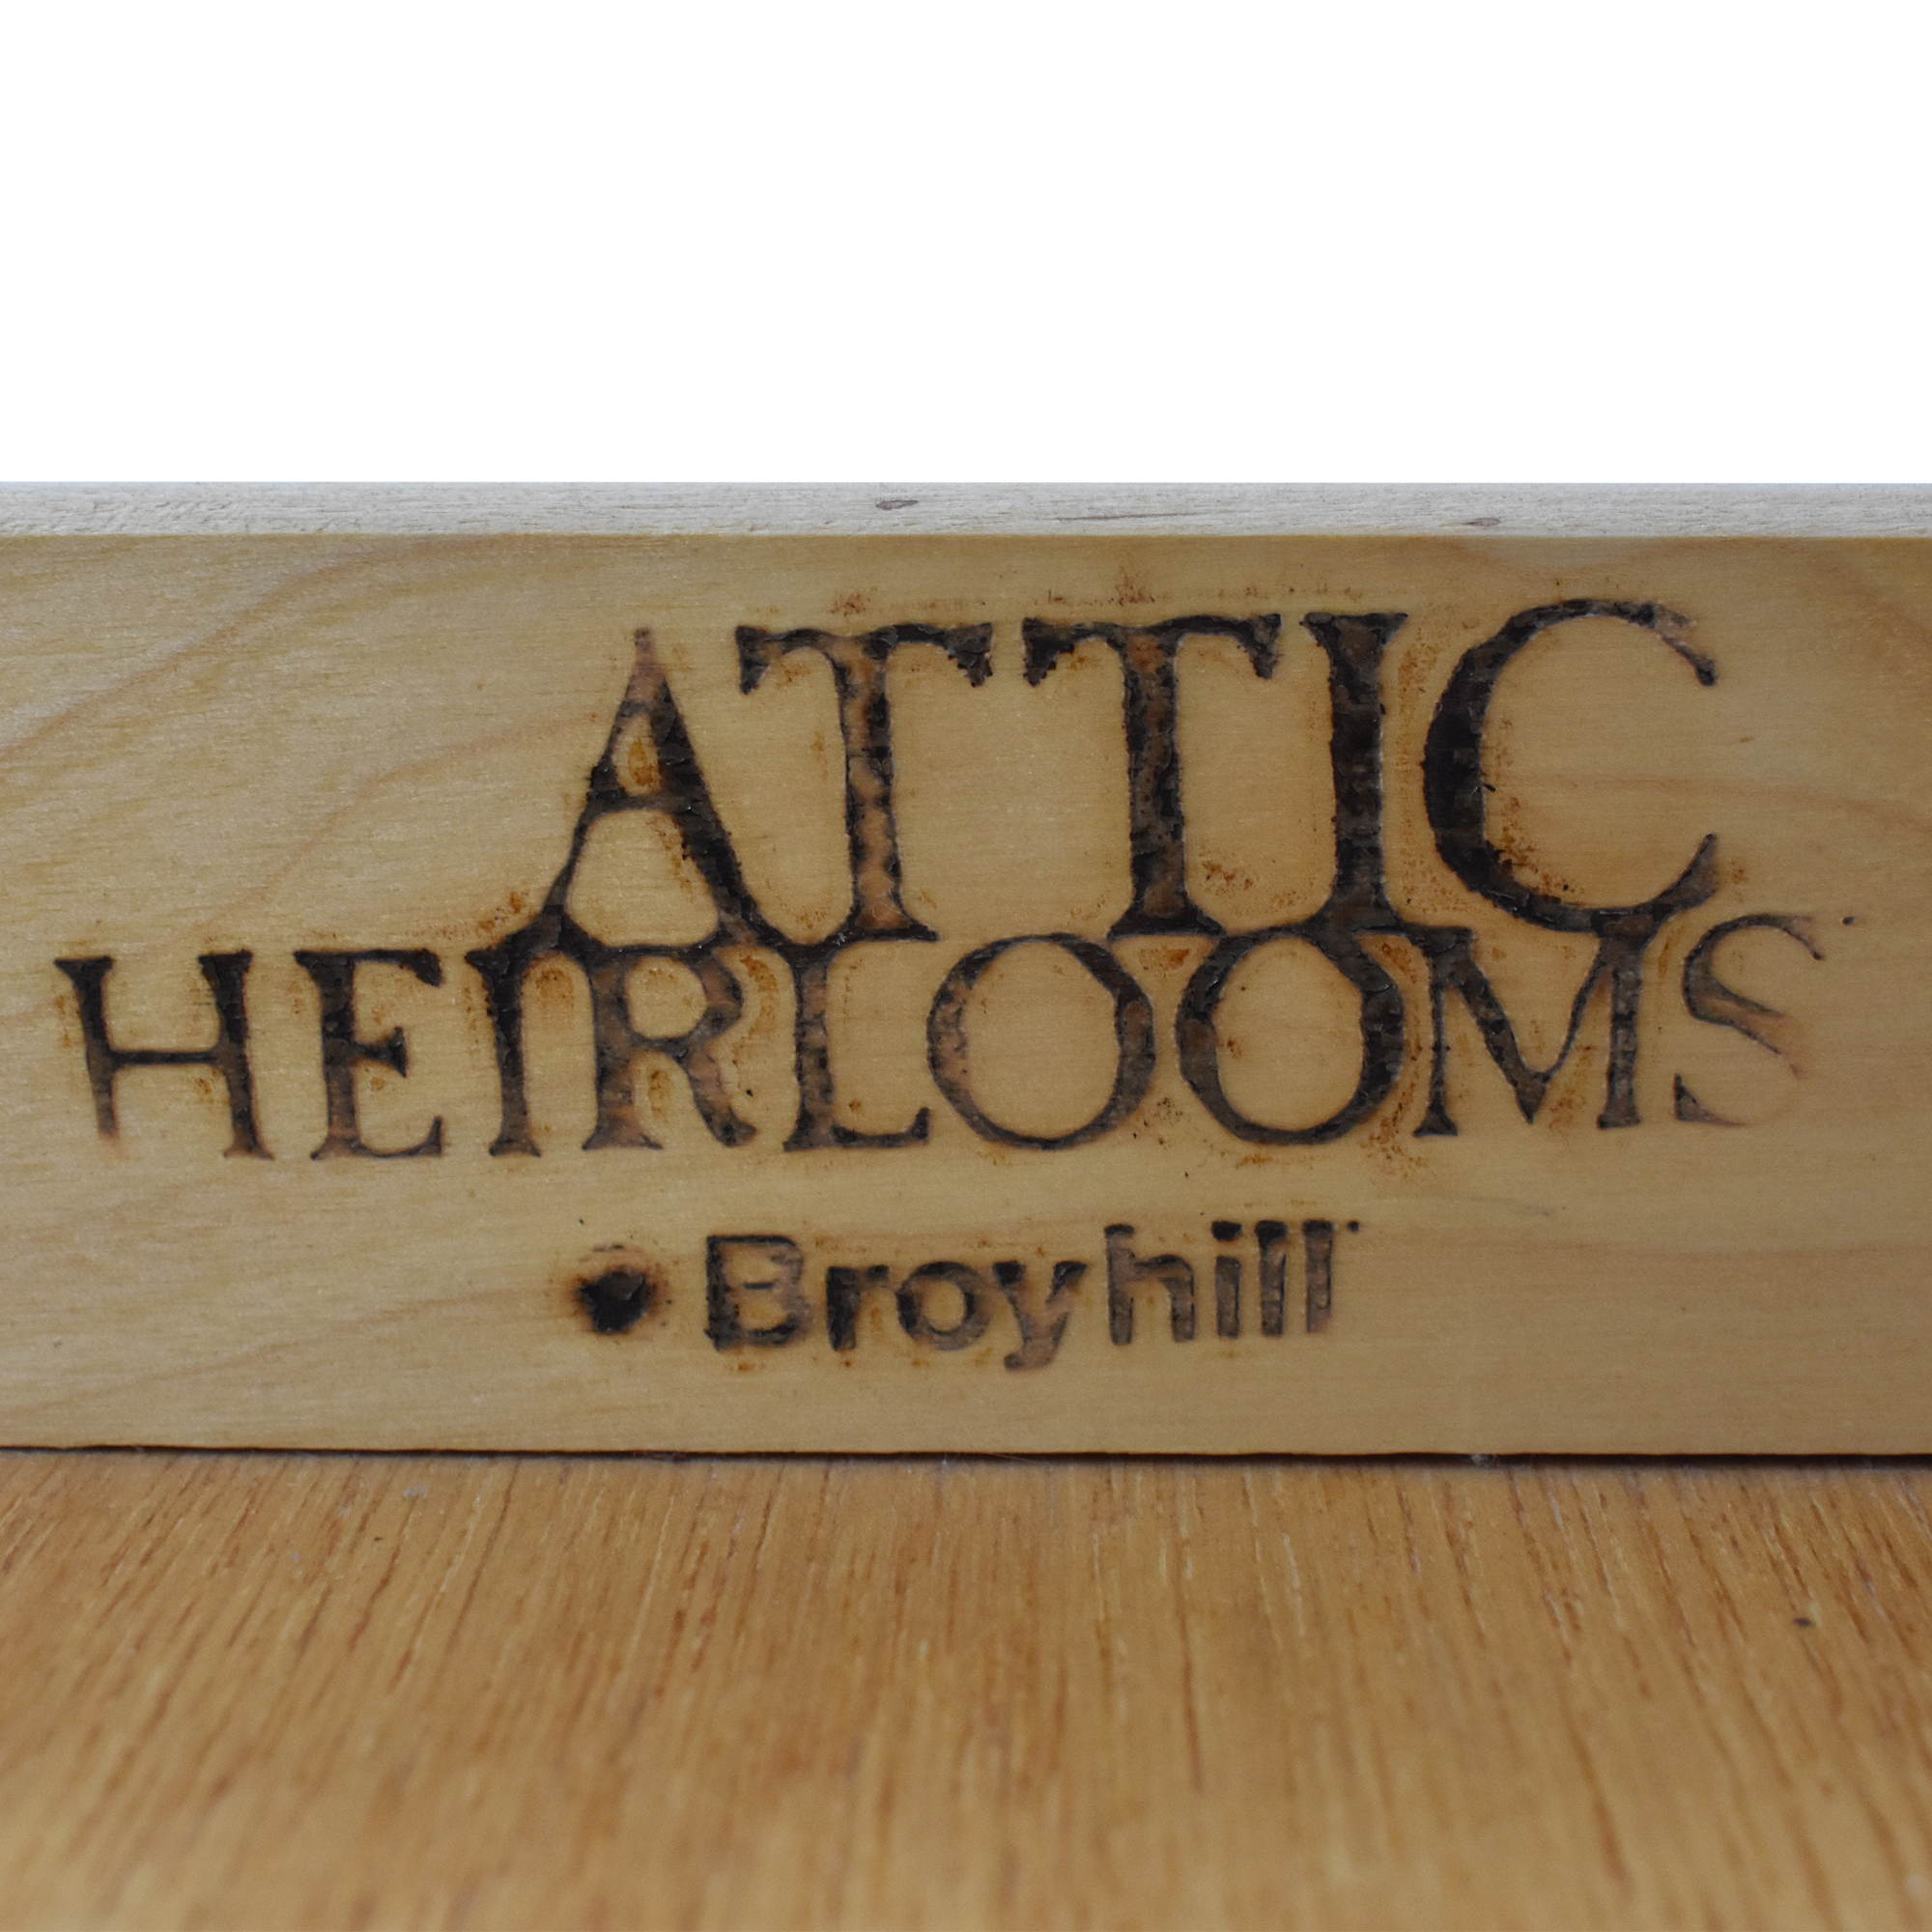 Broyhill Furniture Attic Heirlooms Cocktail Table / Tables